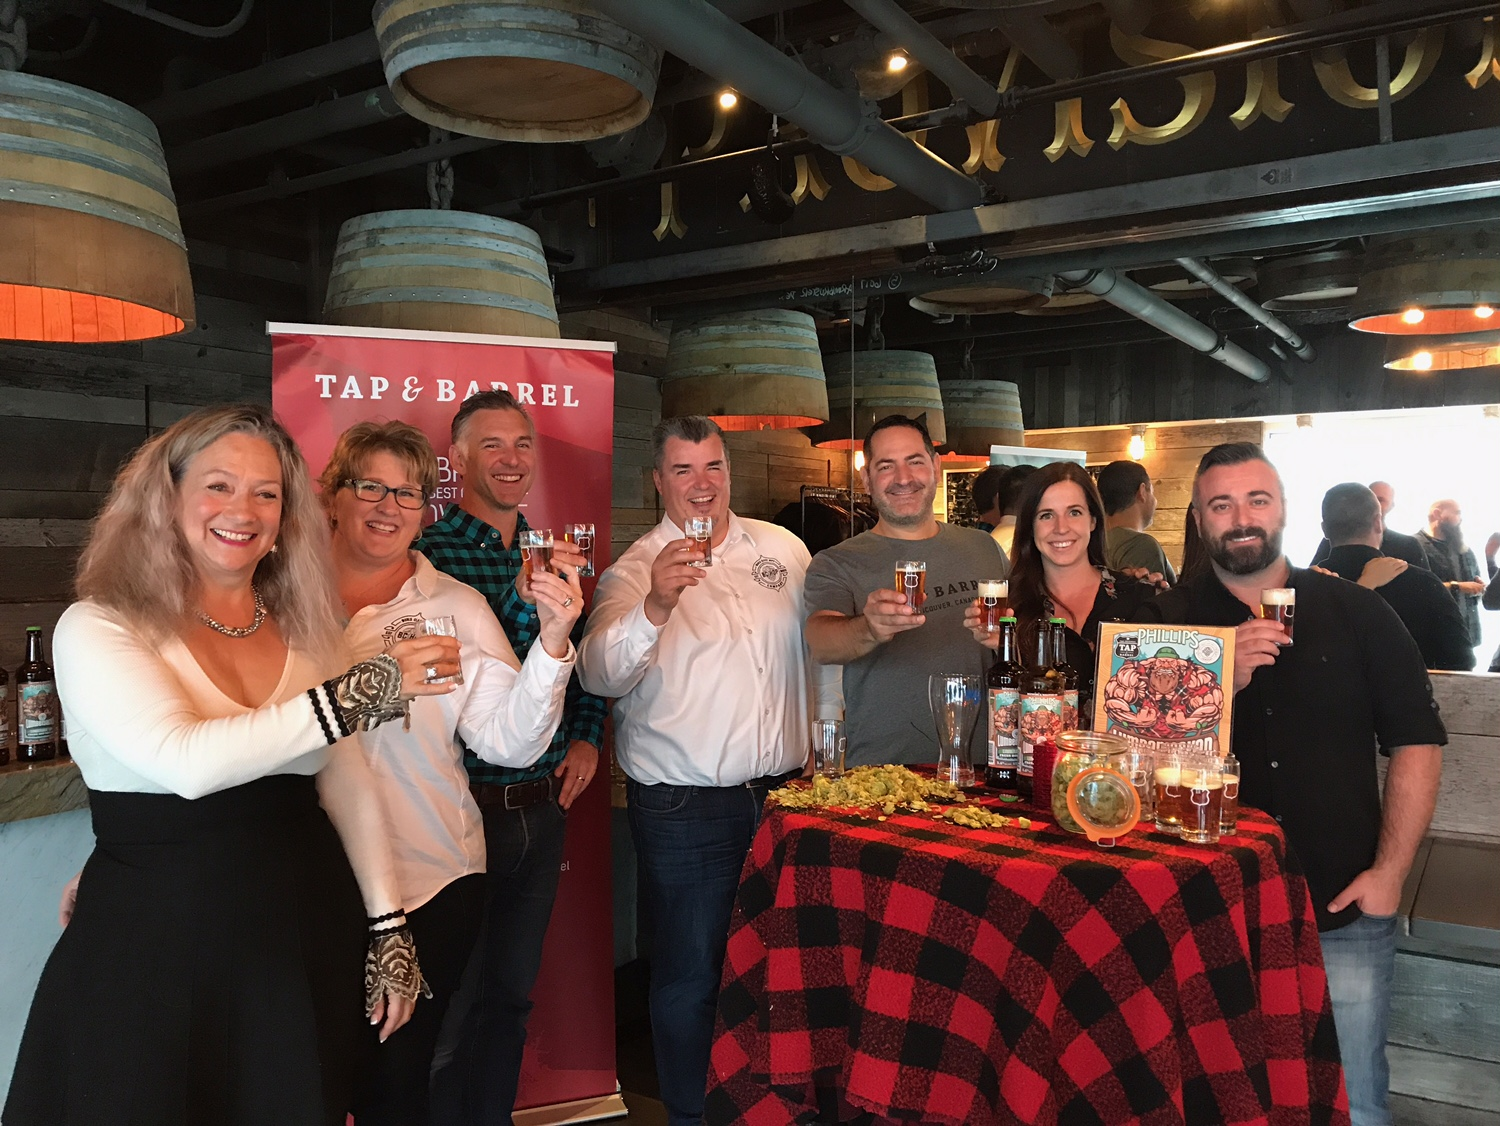 Cheers to the perfect made in BC collaboration and the passionate people who made it happen at Phillips Brewing & Malting, Tap& Barrel and BC Hop Co!!!